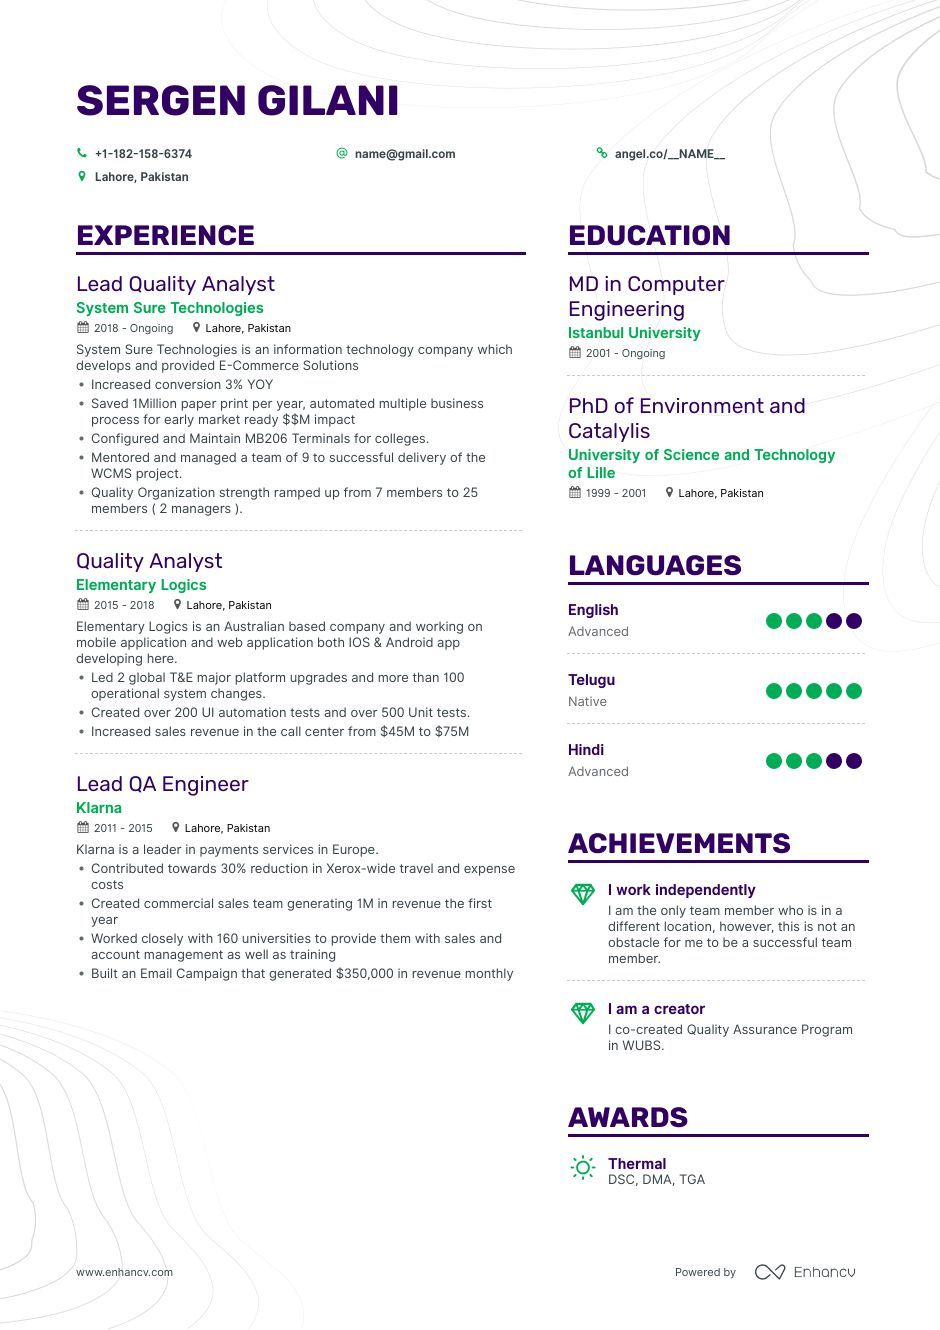 Quality Analyst Resume Samples A Step by Step Guide for 2020